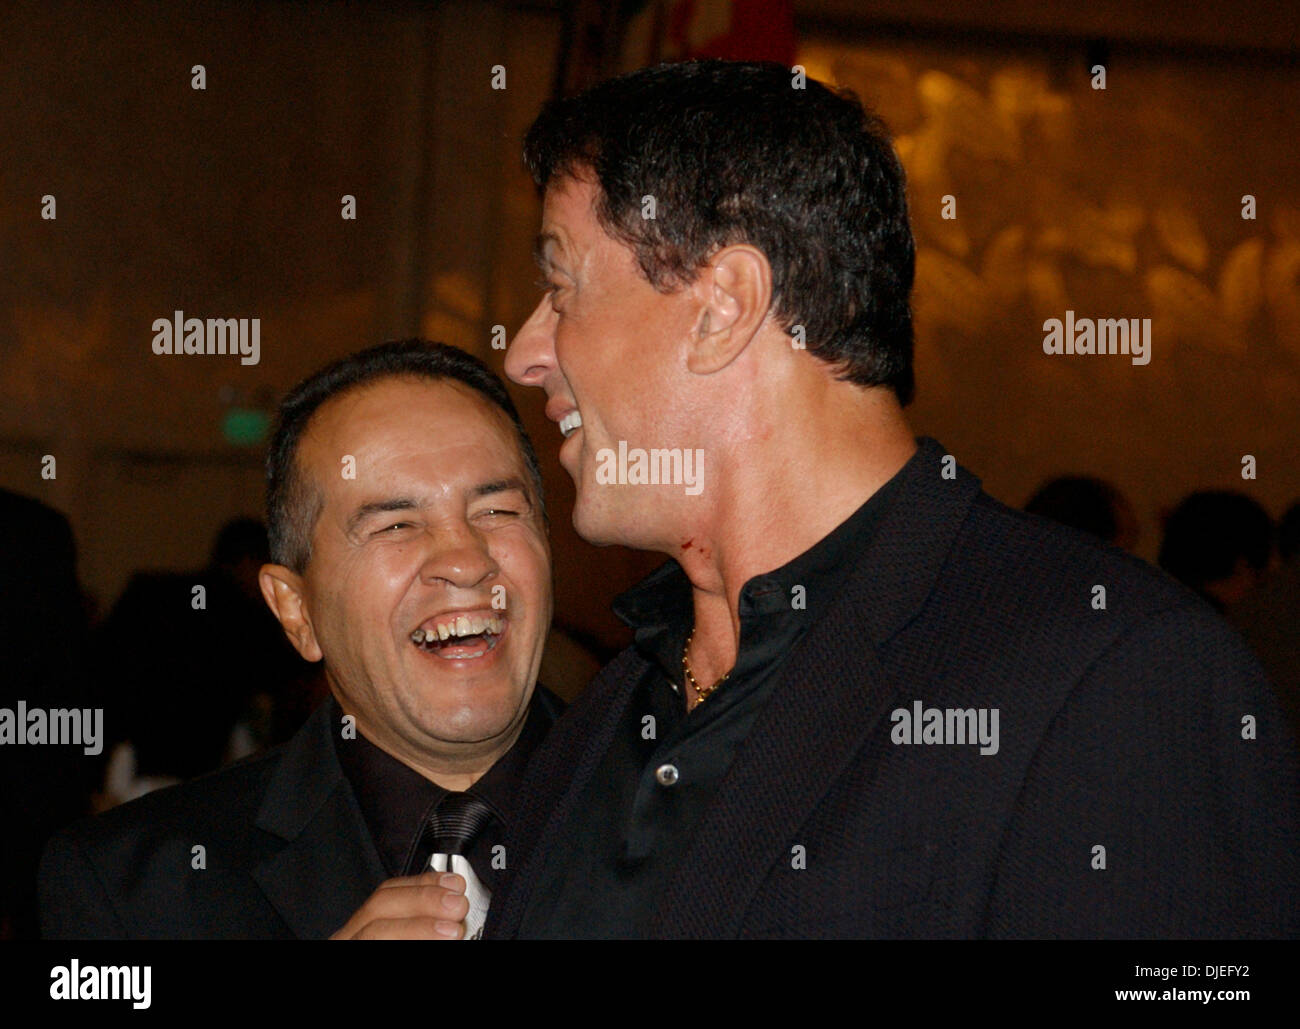 Oct 16, 2004; Commerce, CA, USA; Former Super Featherweight Champion BOBBY CHACON shares a laugh with actor SYLVESTER STALLONE at The 25th Annual World Boxing Hall of Fame Banquet held at The Commerce Casino. - Stock Image